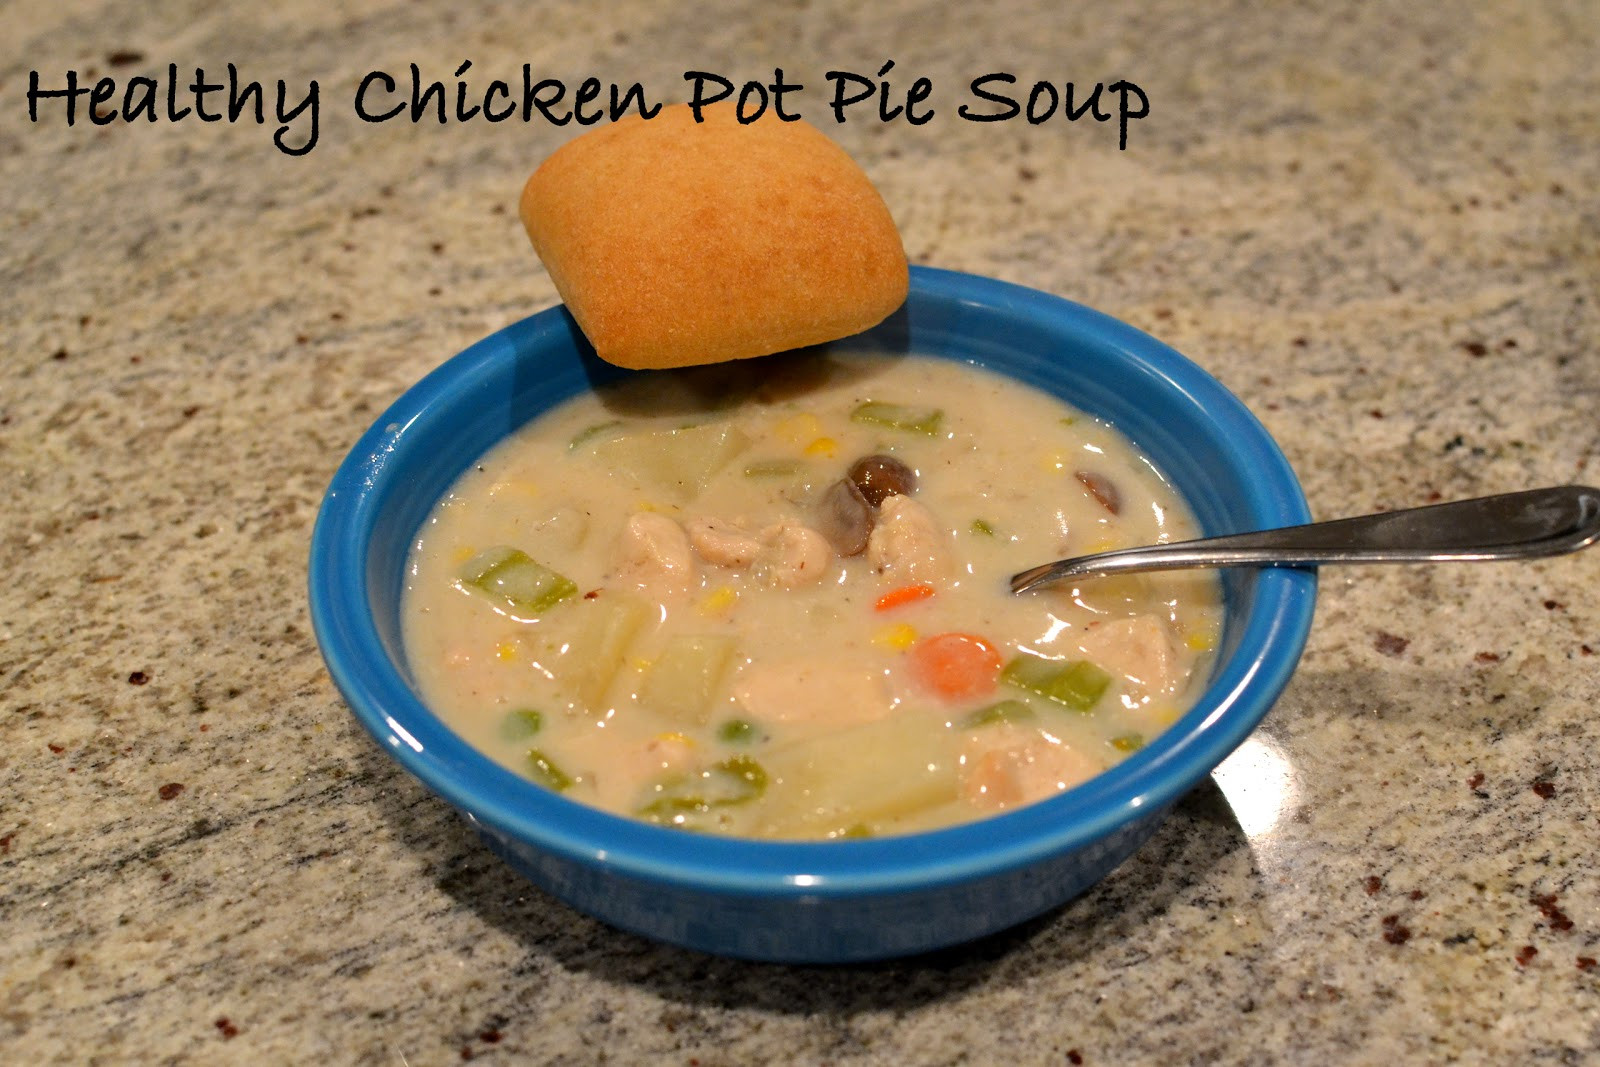 Healthy Chicken Pot Pie Soup  Healthy Chicken Pot Pie Soup LaForce Be With You